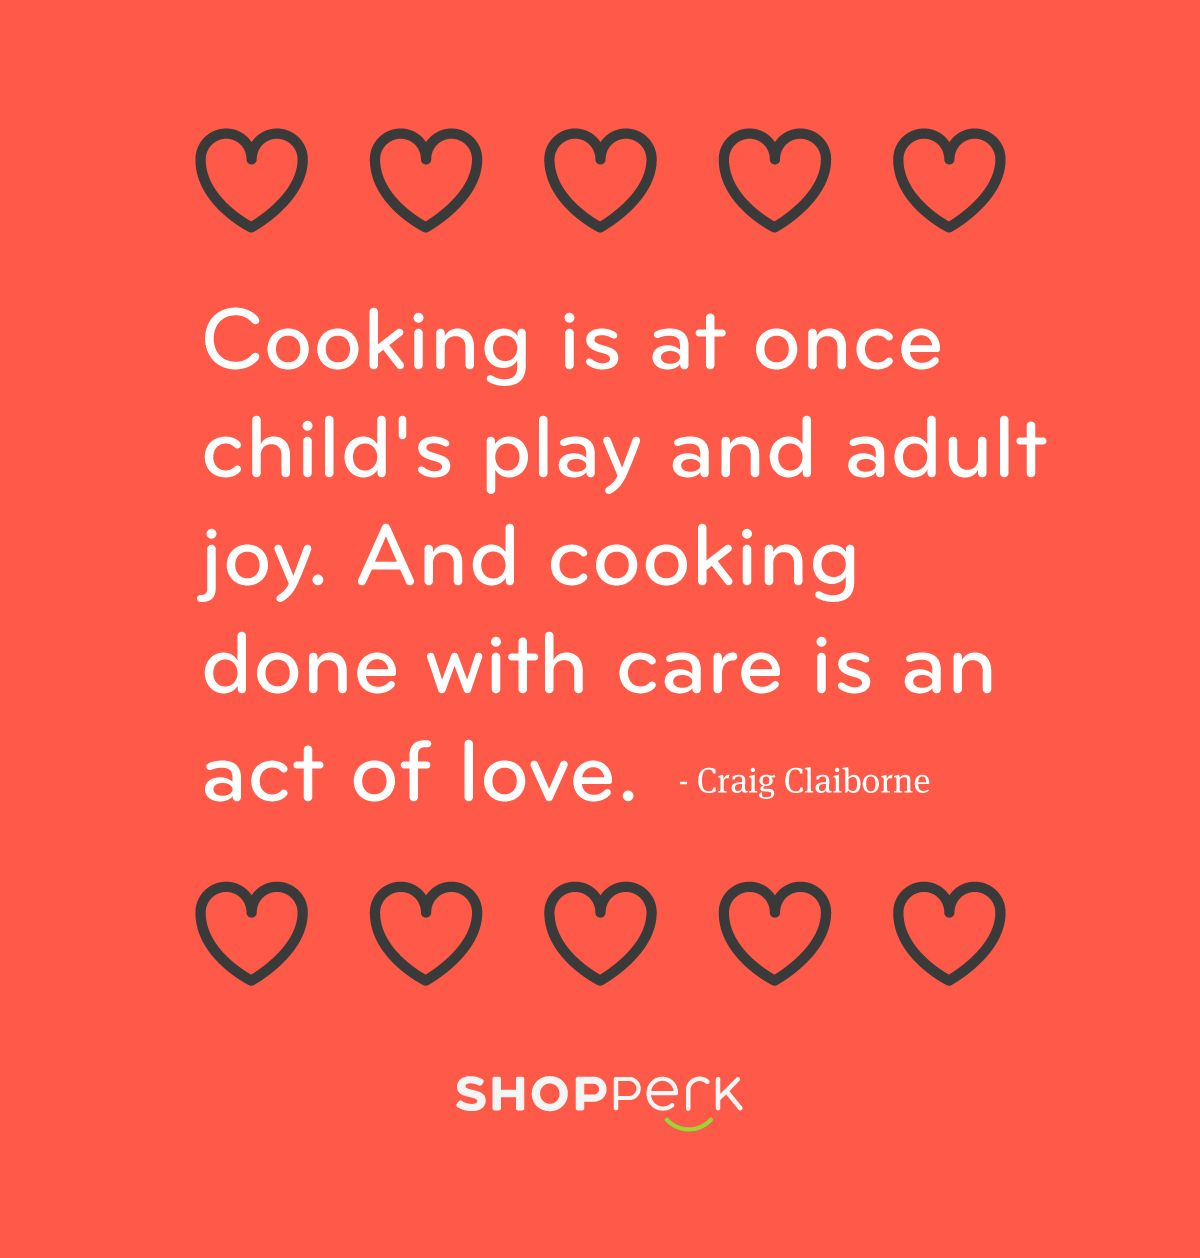 Cooking Done With Care Is An Act Of Love Vermontmaidcom Cooking